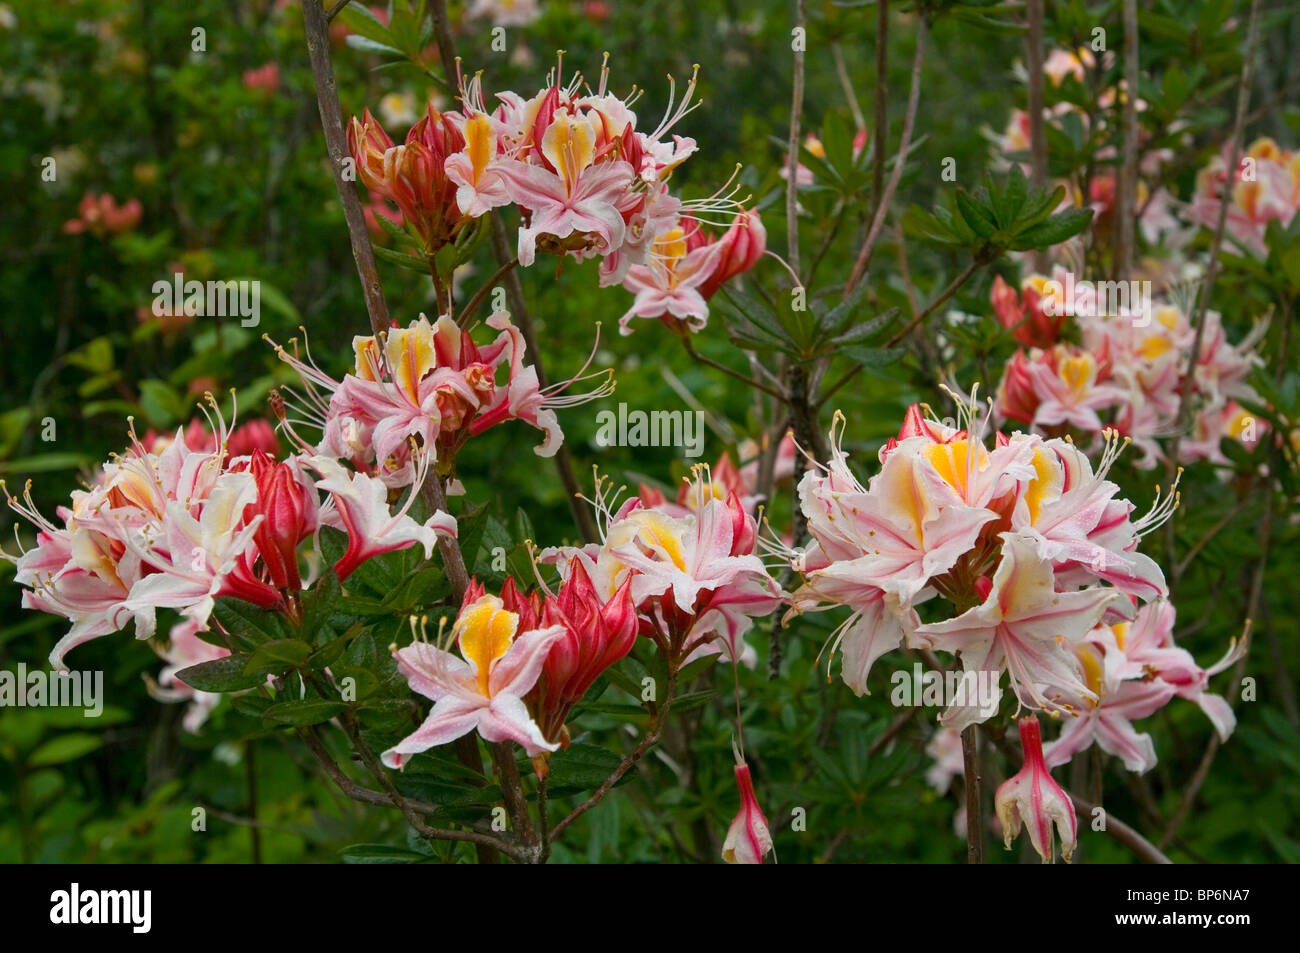 Wild Azalea Flowers In Bloom In Spring At The Azalea State Natural